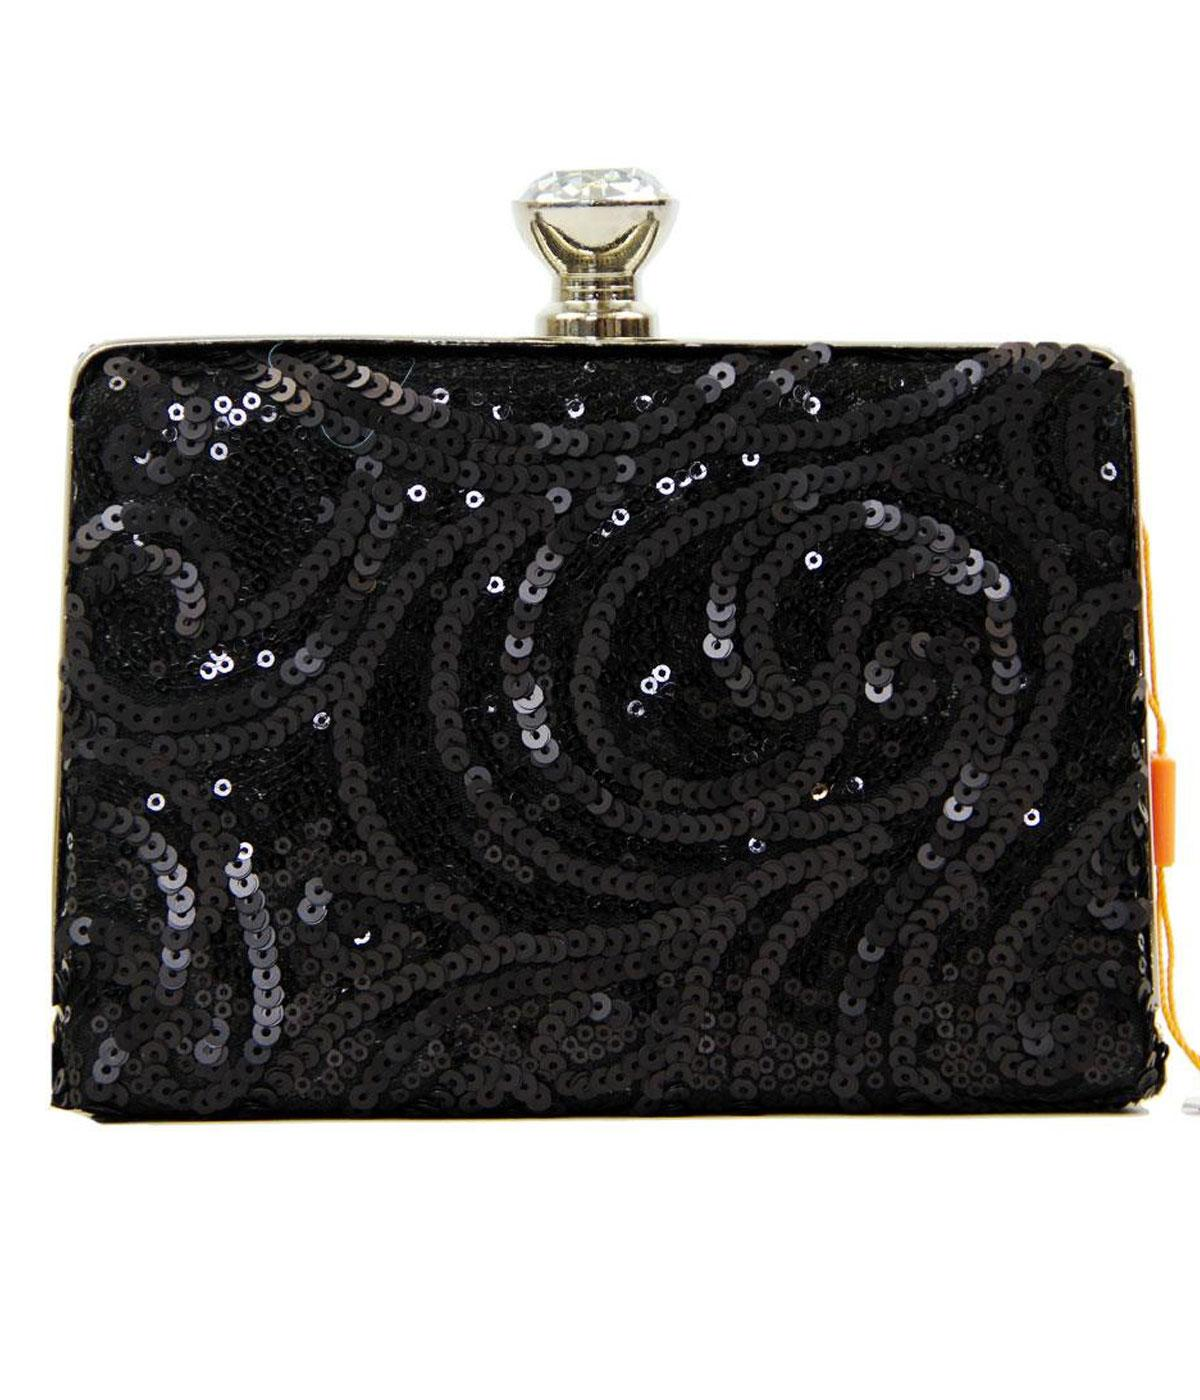 Black Sequin PEACH Mod Retro 60's Clutch Bag